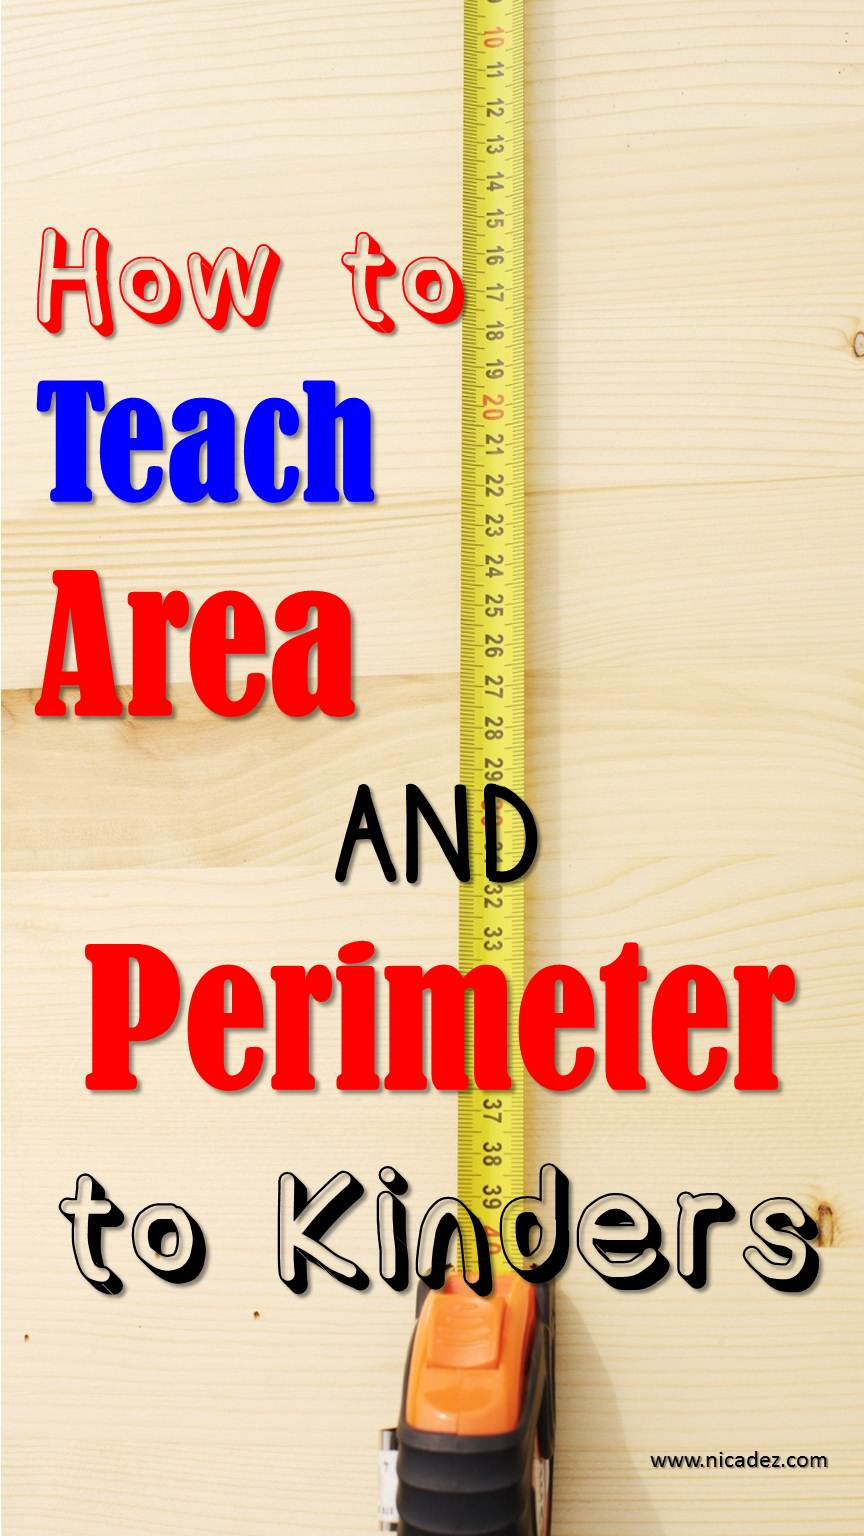 Tips to teach area and perimeter.